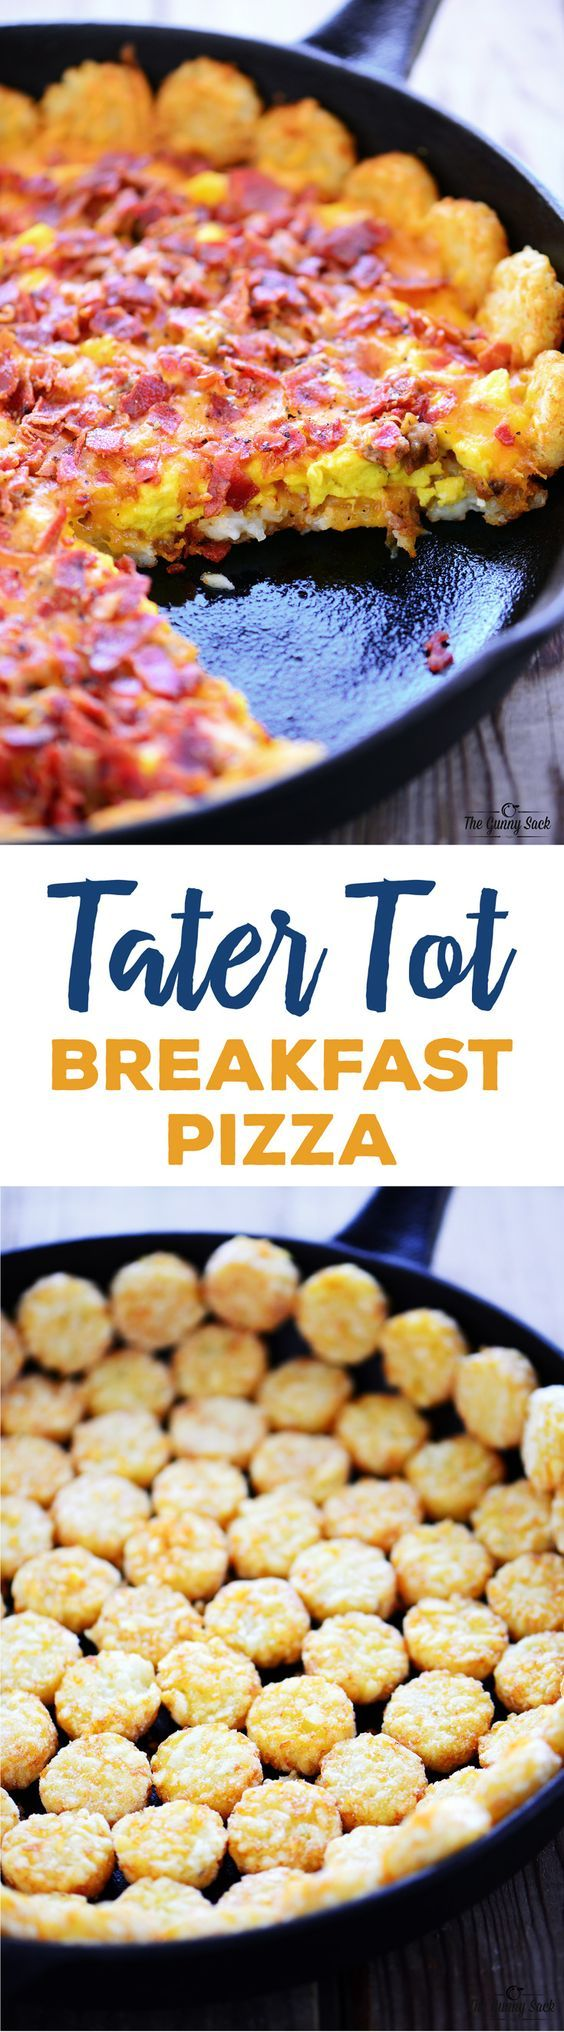 Tater Tot Breakfast Pizza...BEST IDEA EVER! Who wouldn't love to wake up to this? Plus, BACON!!